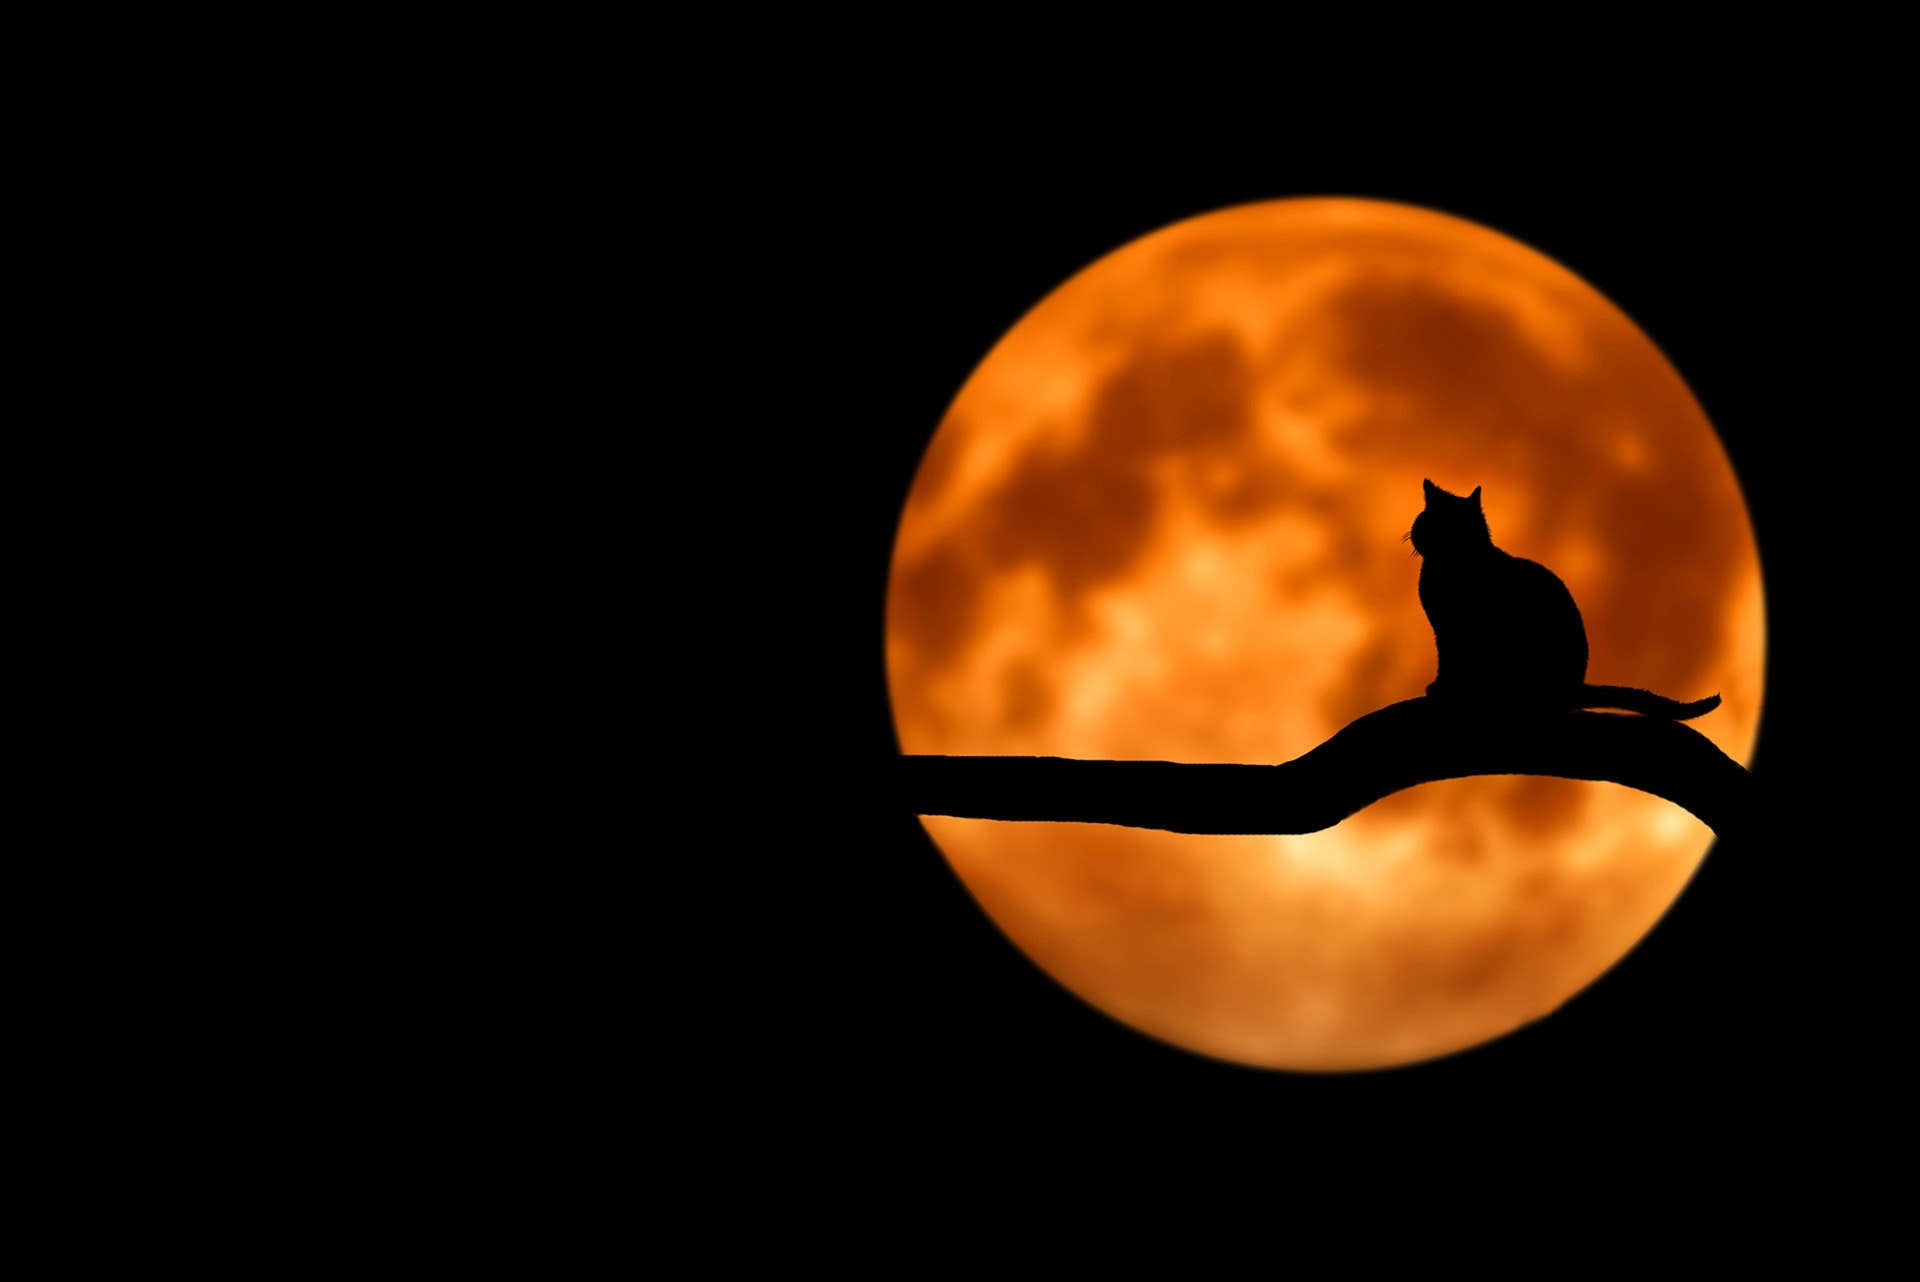 Silhouette of cat on branch with big orange moon in sky behind.